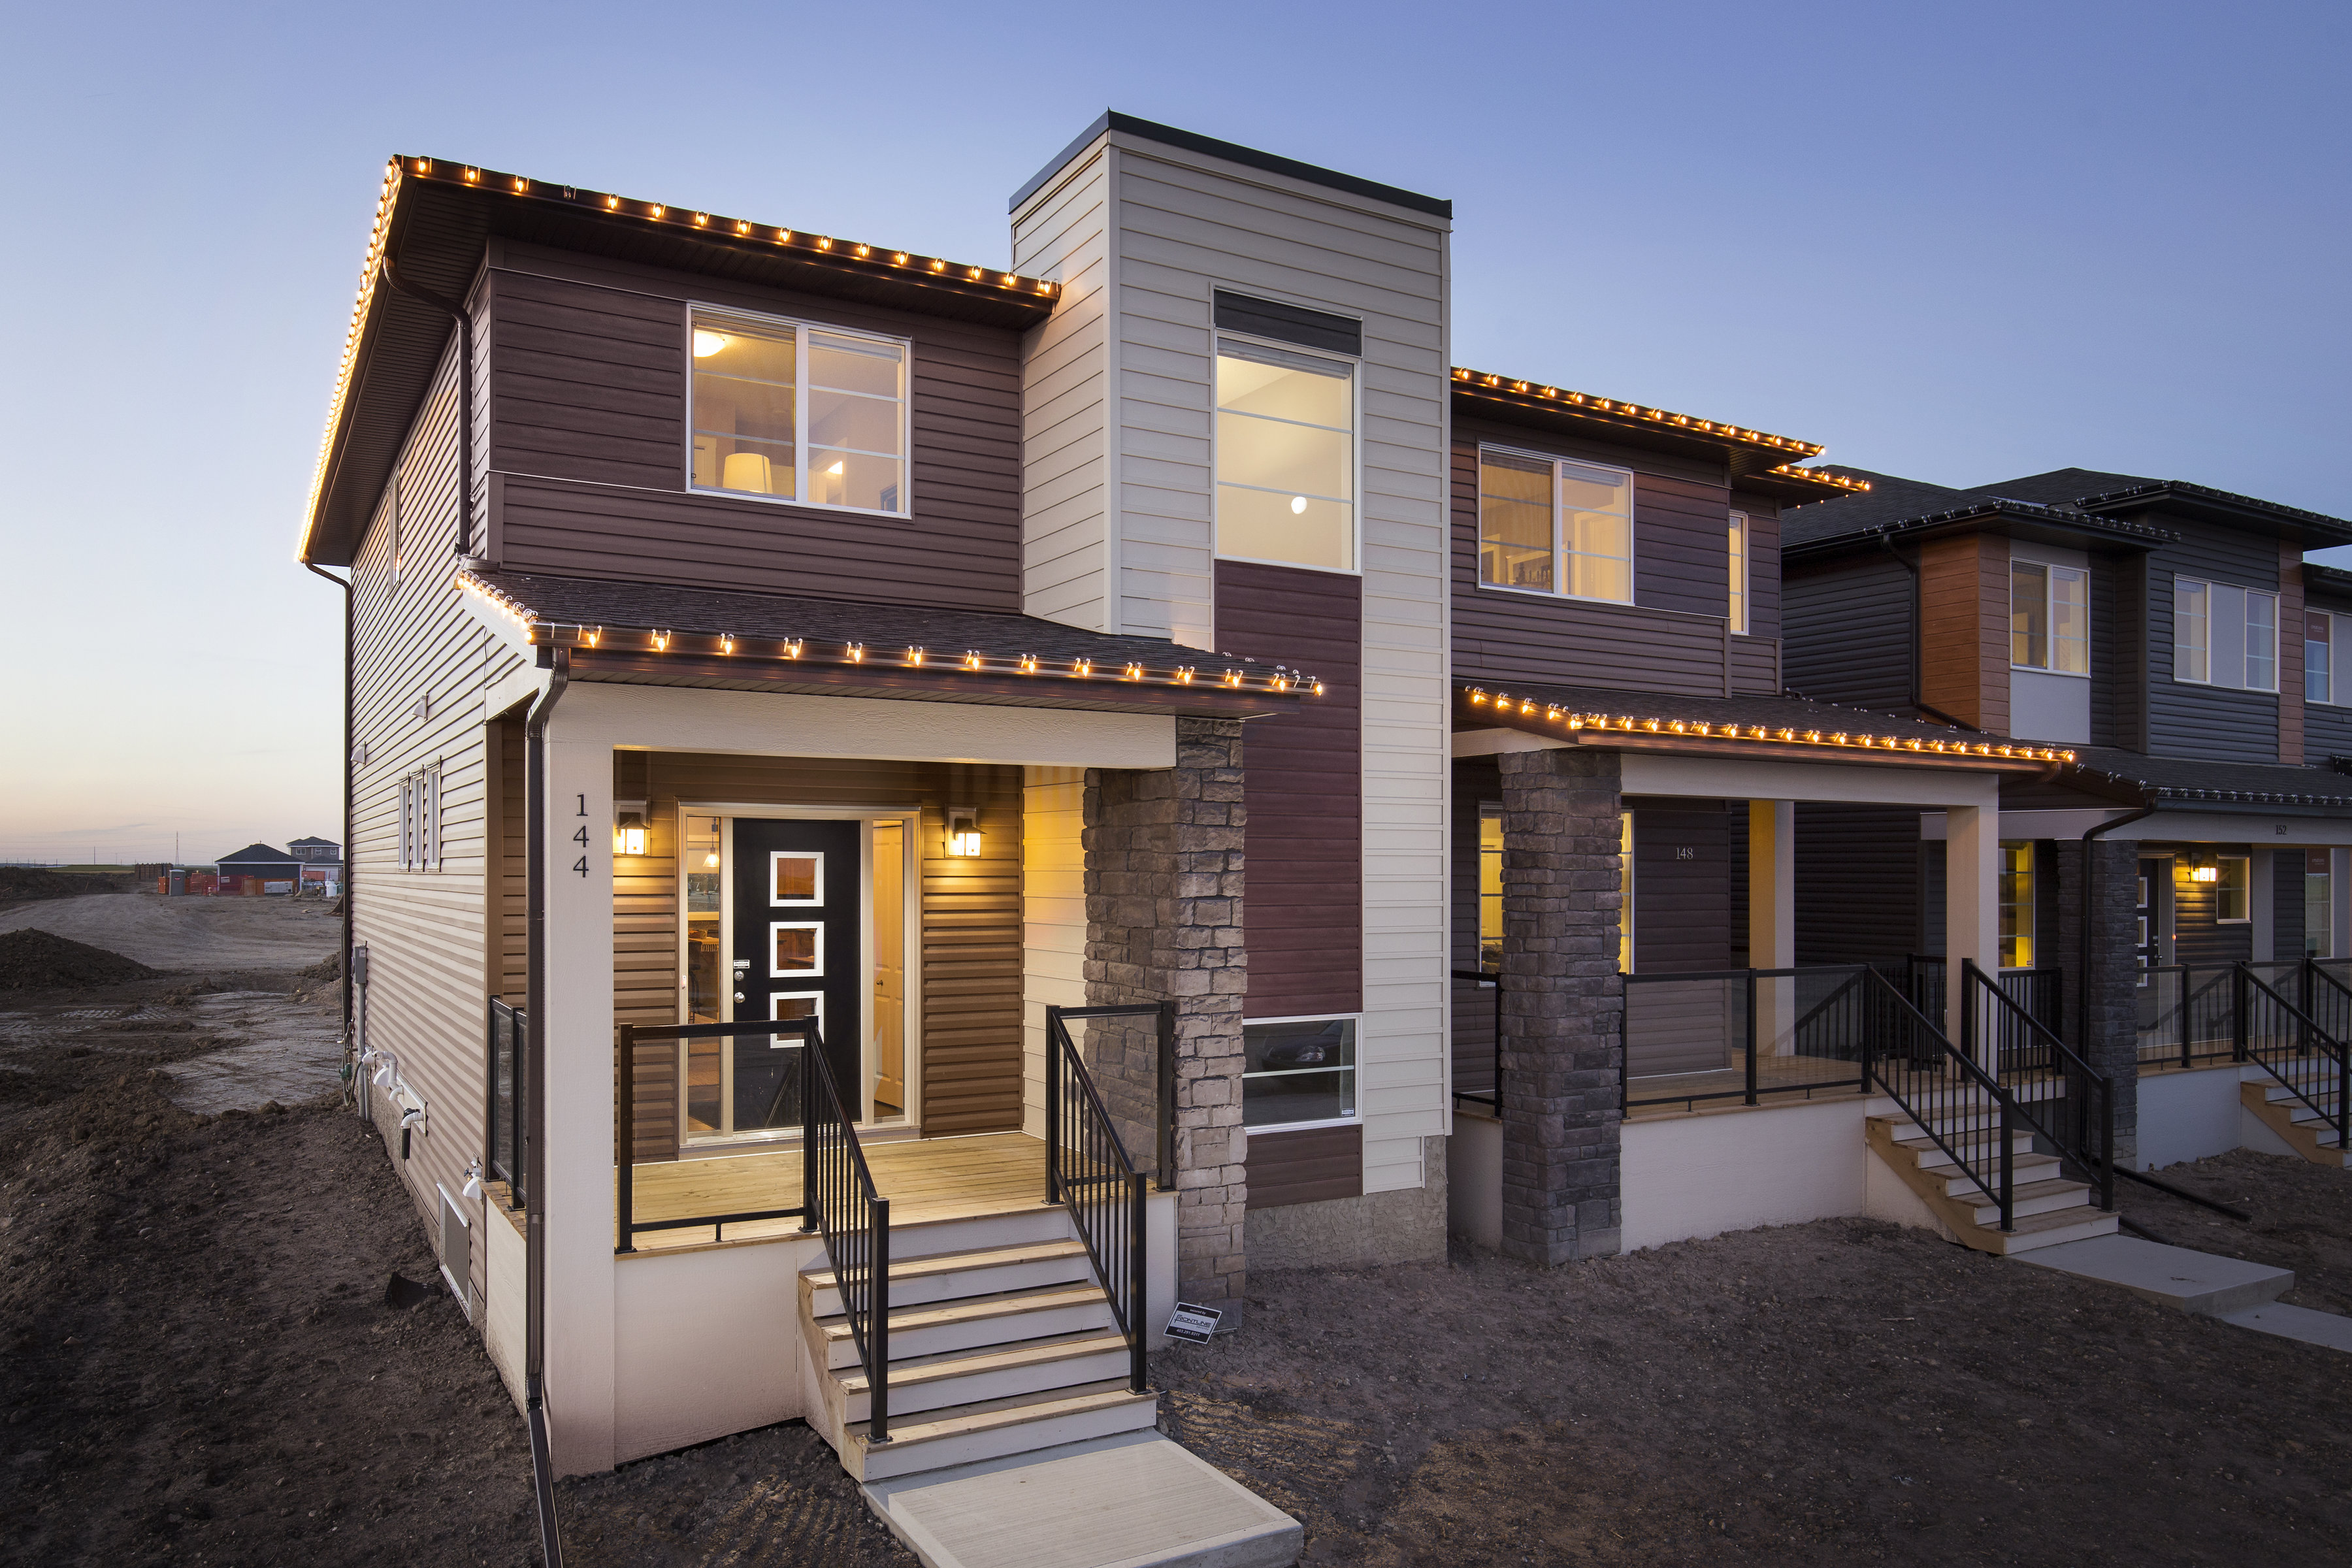 exterior view of the shane homes duplex home from the street at cornerstone community.